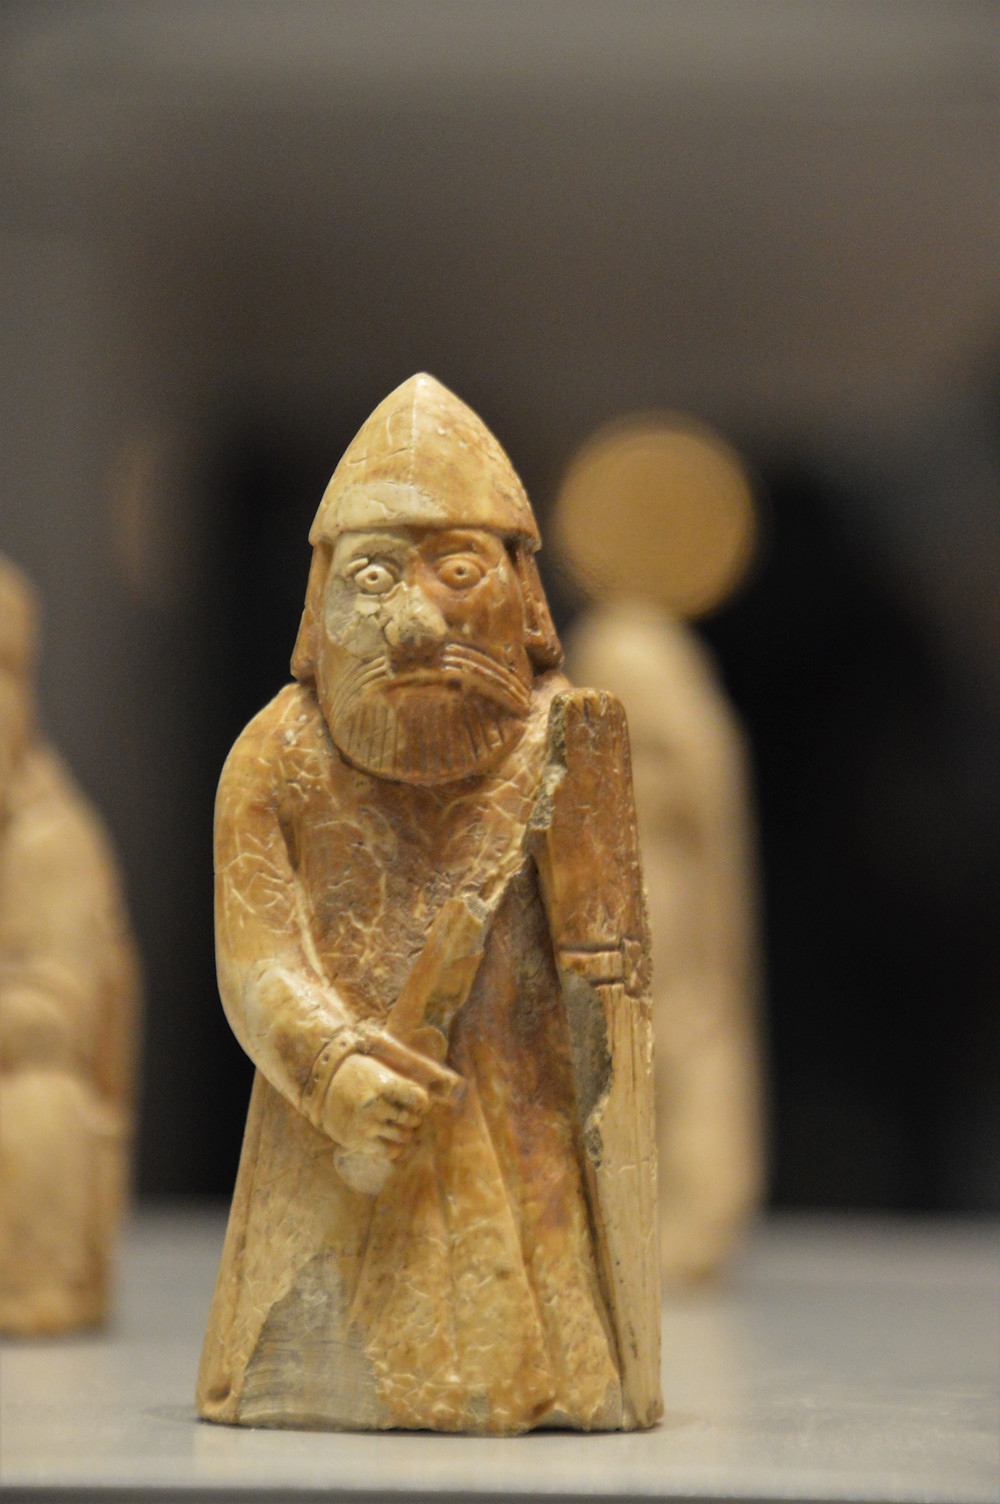 On display in the British Museum the Lewis Chessmen Rook standing soldiers or 'warders' holding shields and swords